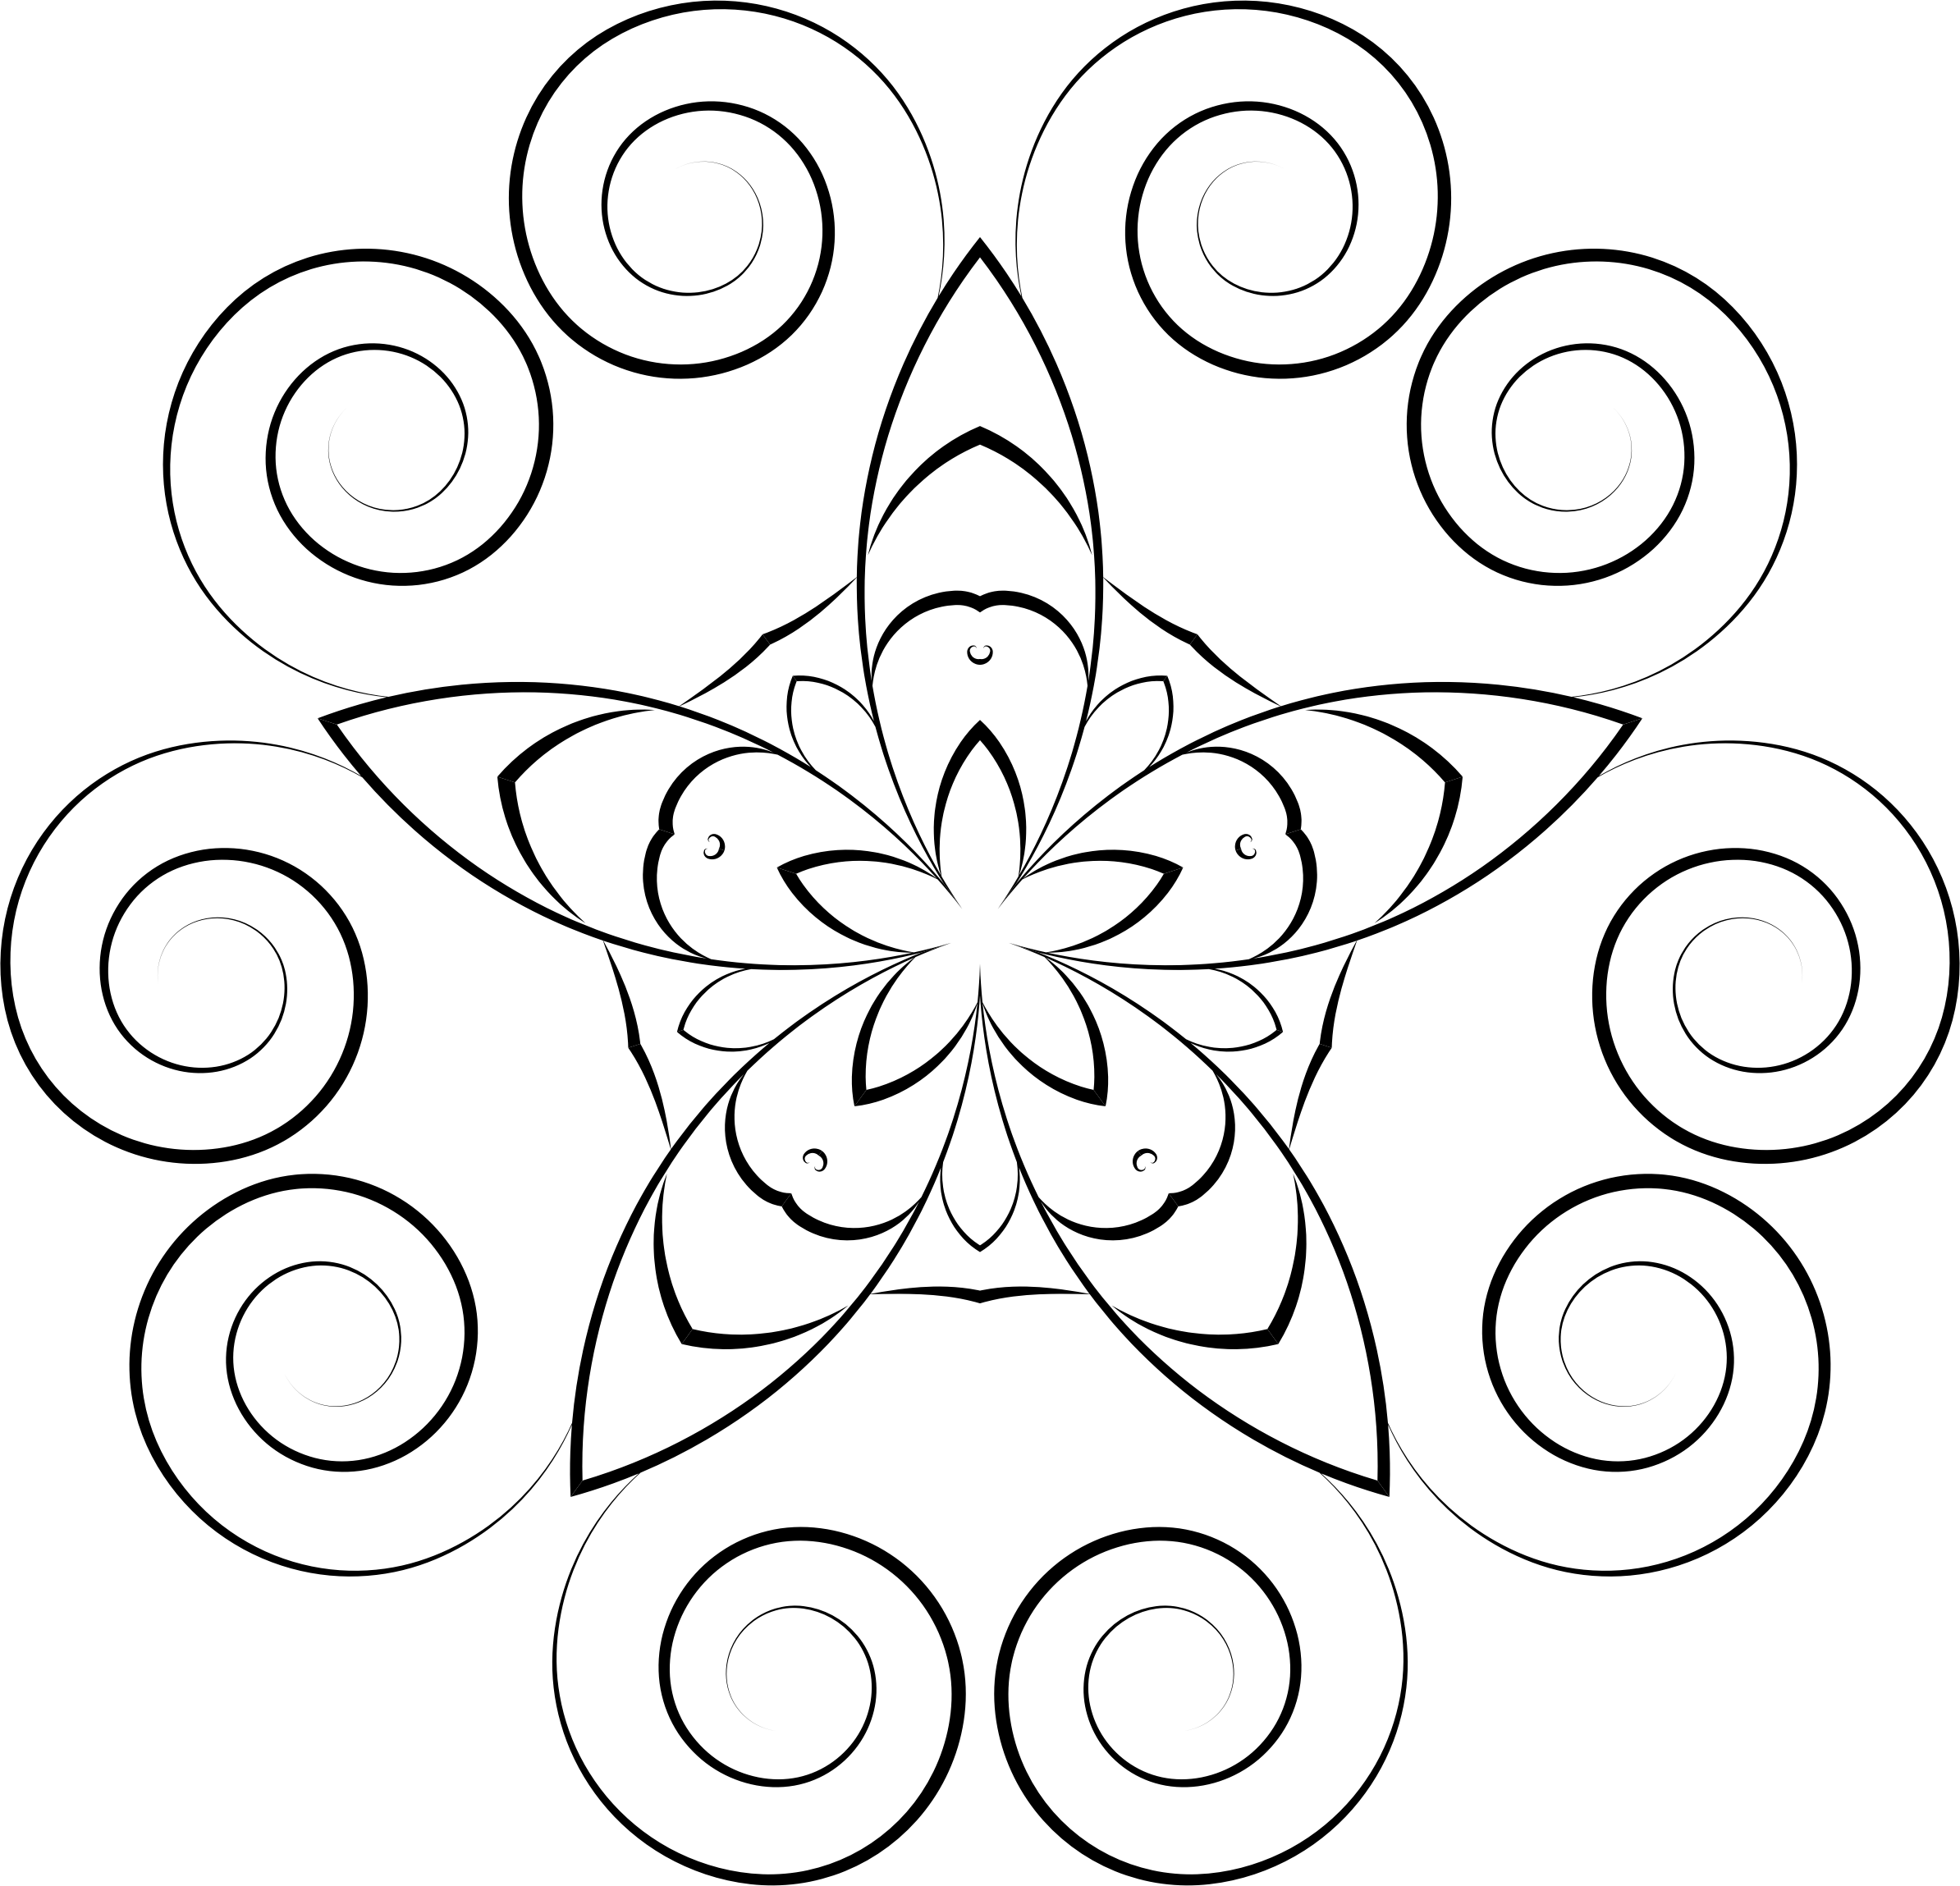 Illusions Drawing Easy Draw Transparent Png Clipart Free Download